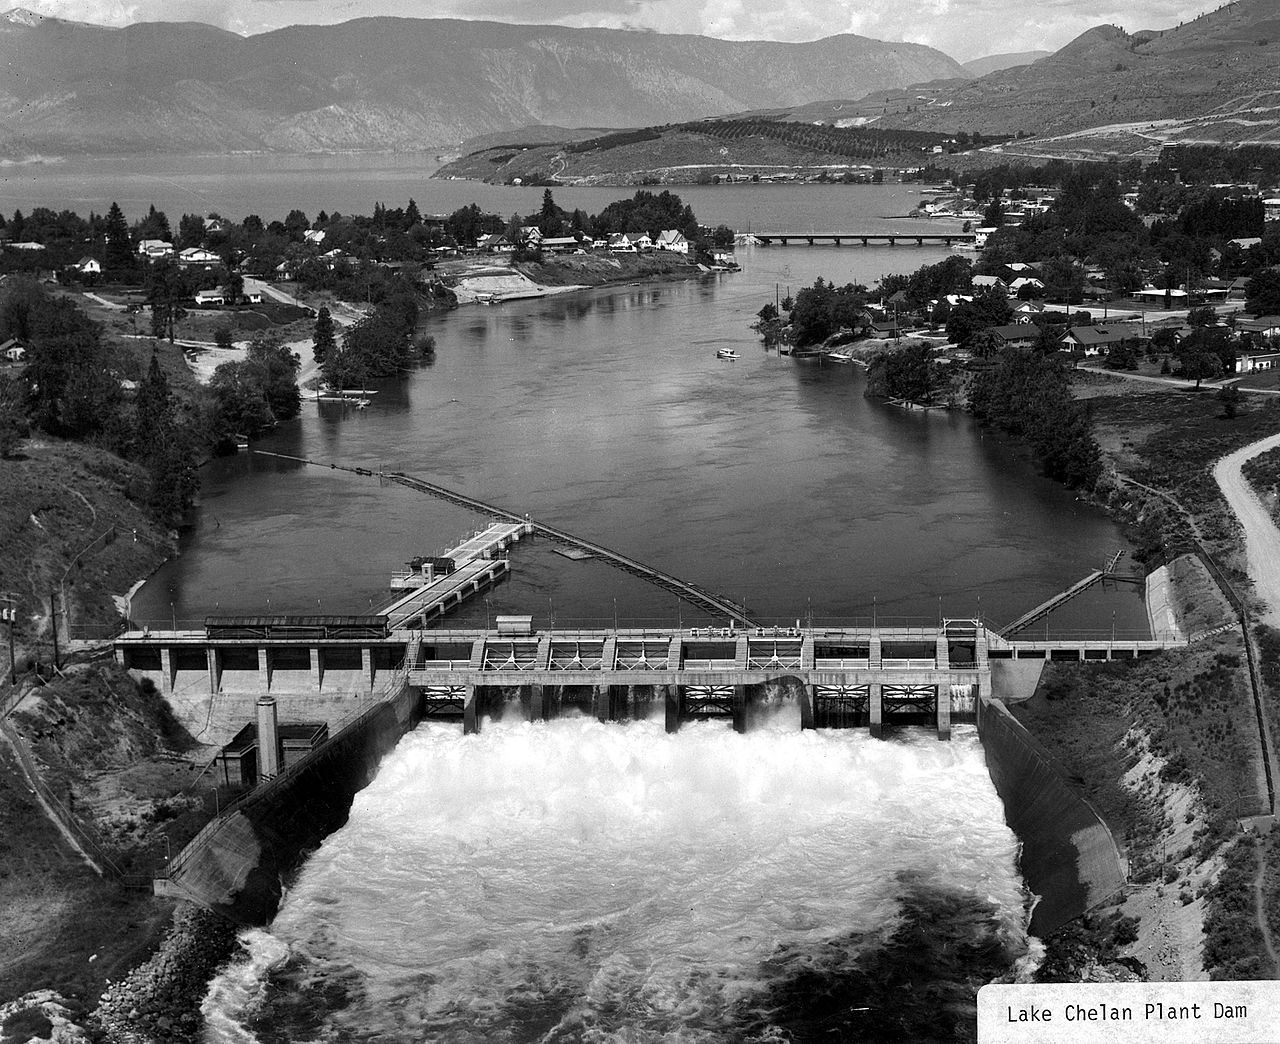 Lake Chelan Damn was built in 1927 along with the powerhouse, which is located 32 miles to the south.